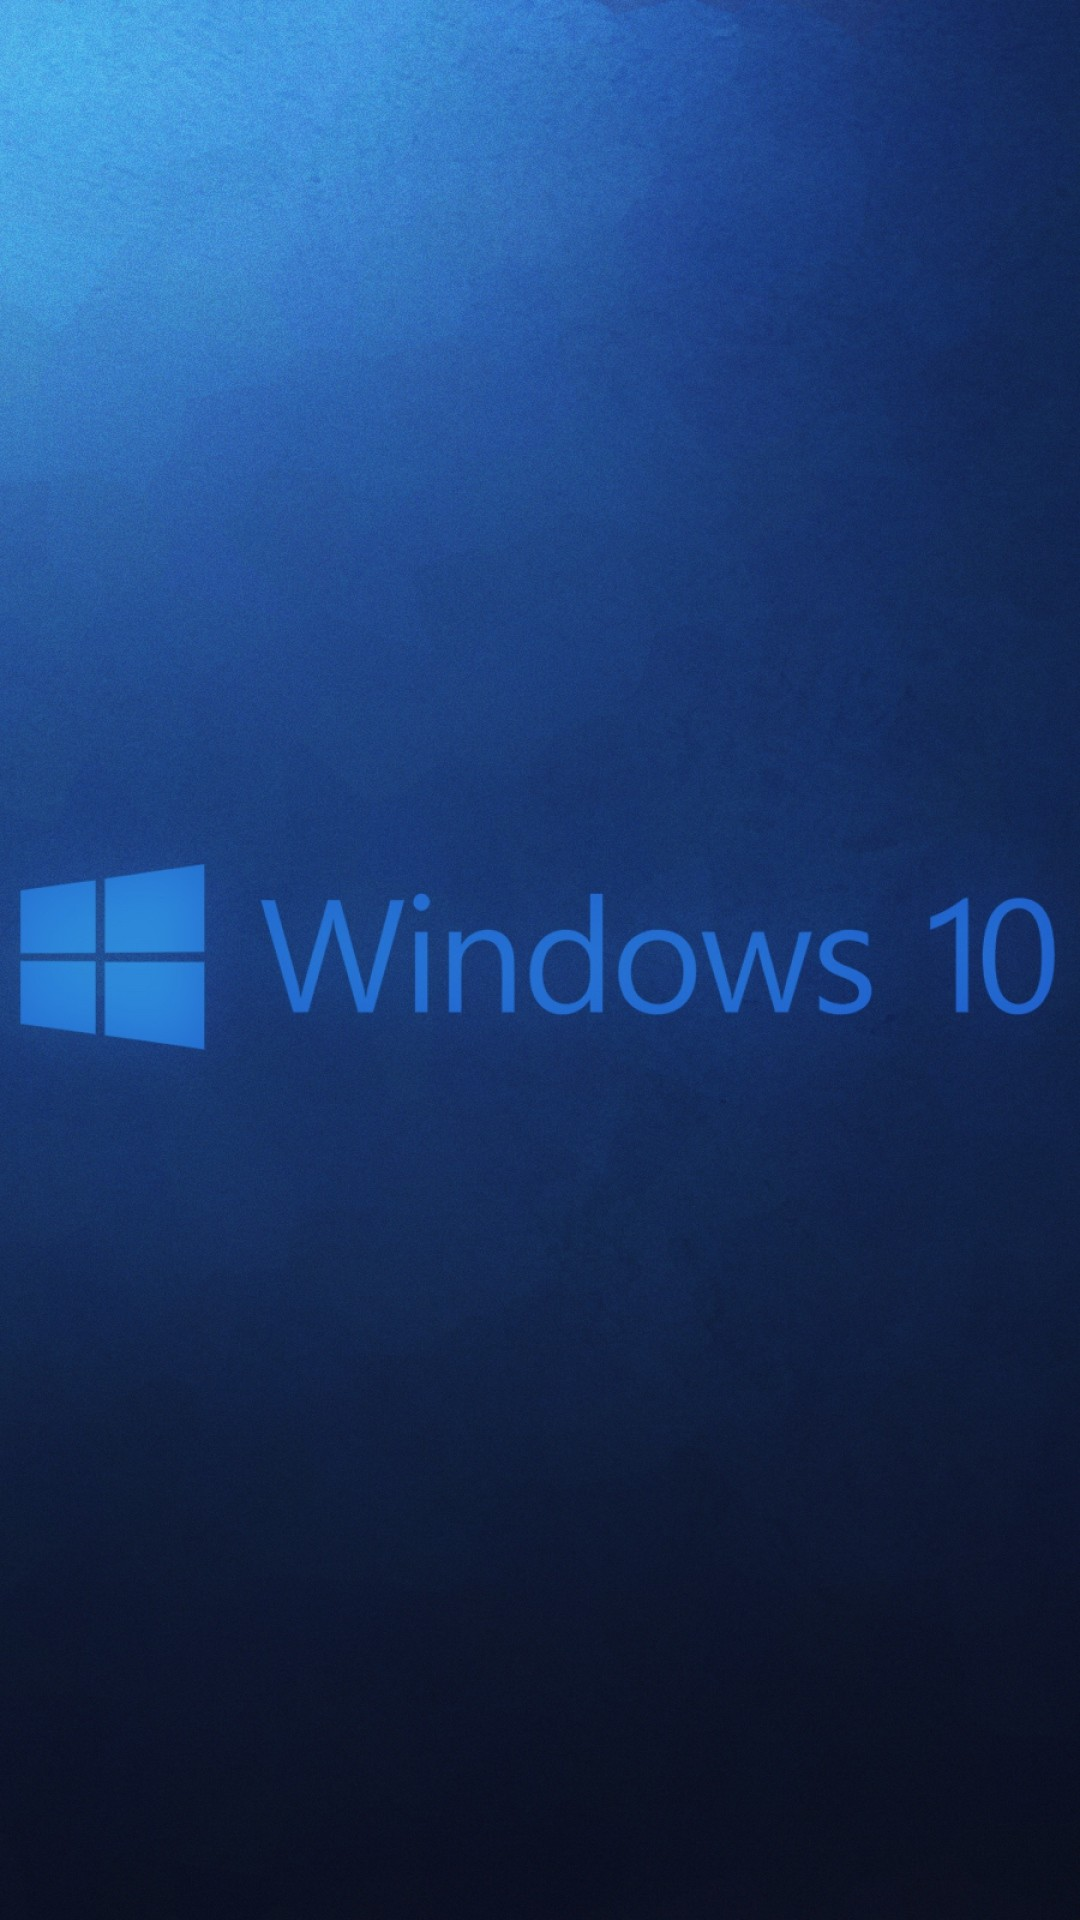 1080x1920 HD Background Windows 10 Wallpaper Microsoft Operating System Blue